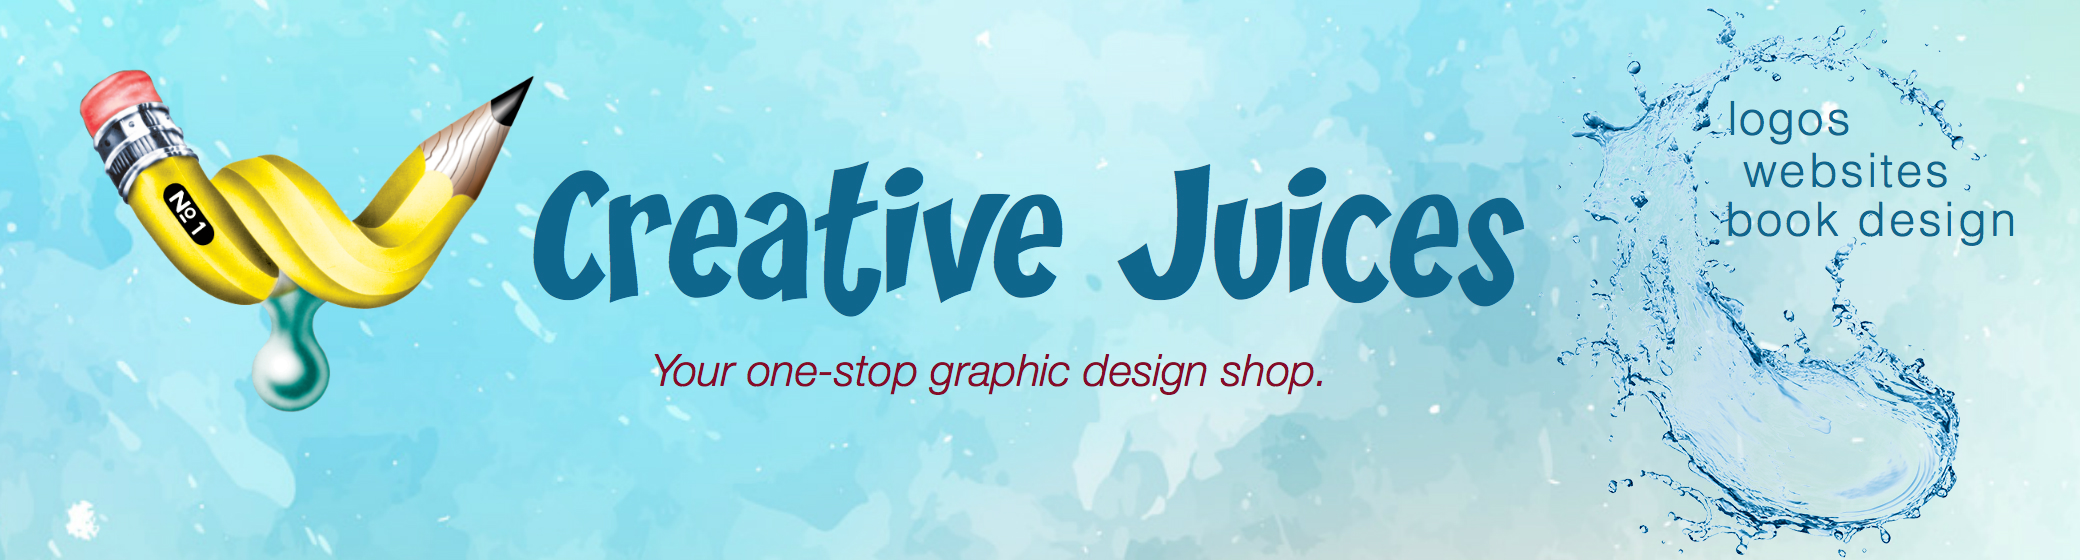 Creative Juices Design